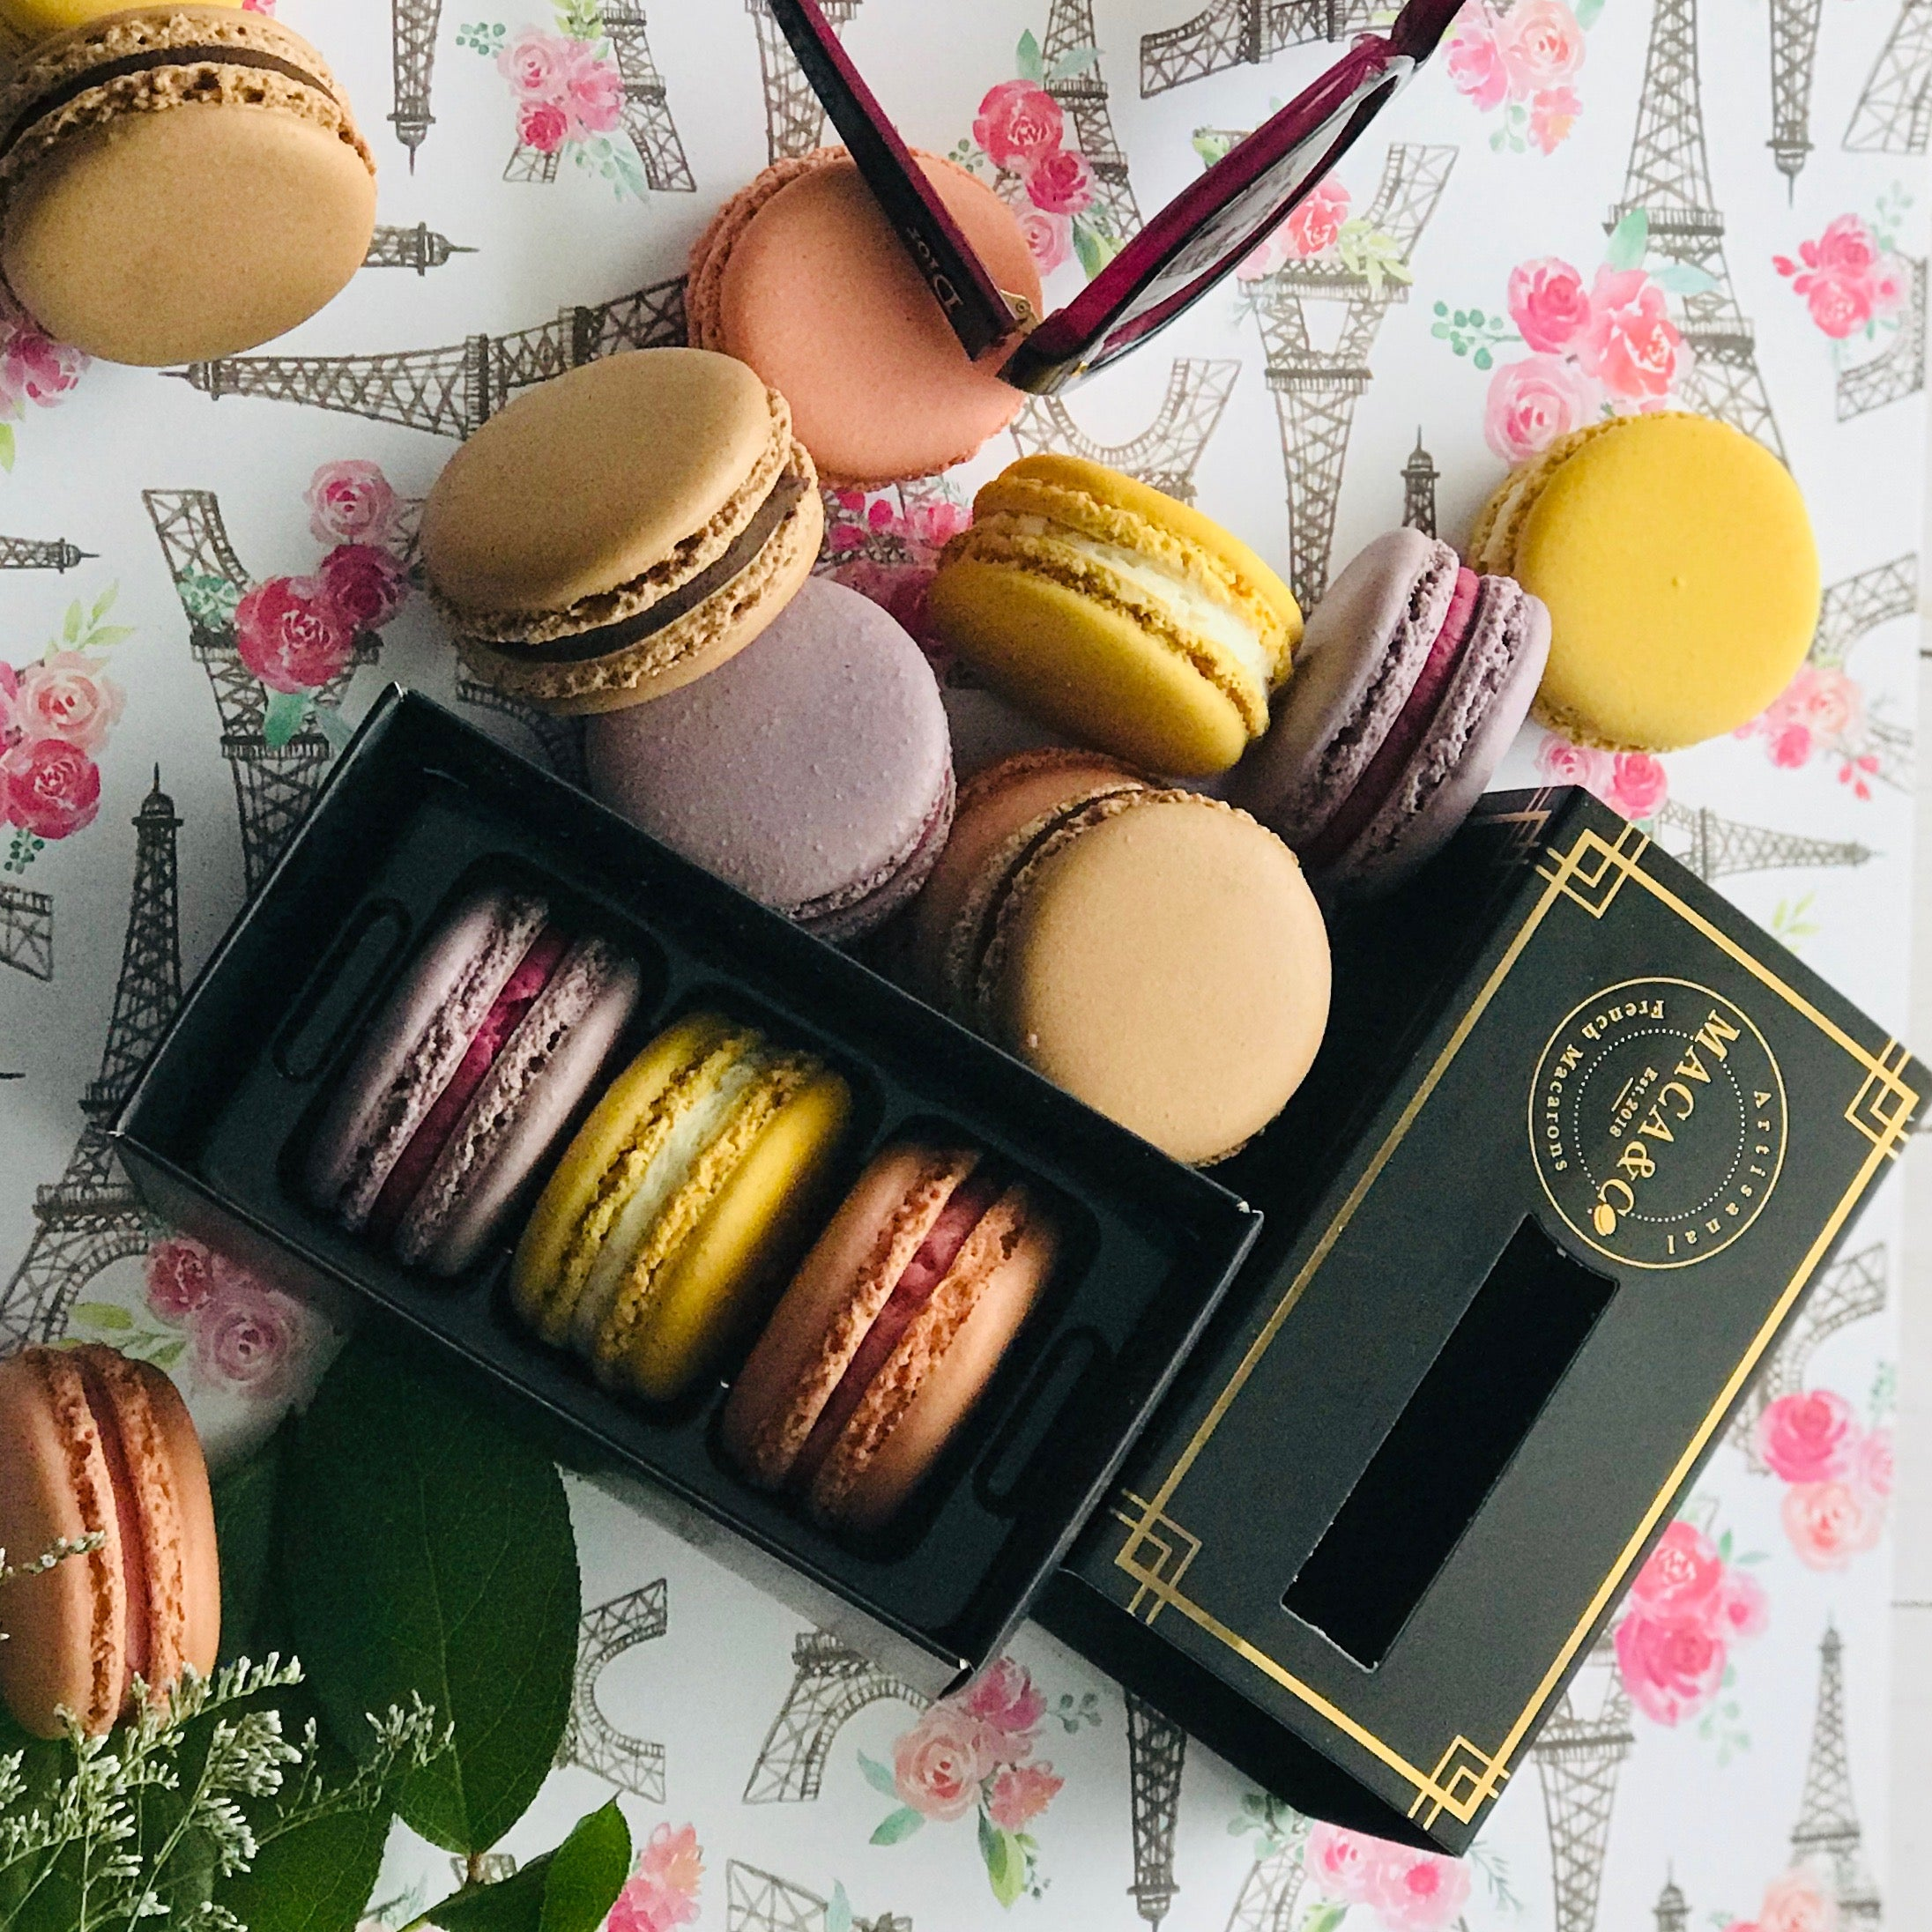 3 Assorted Trio Boxed Macarons